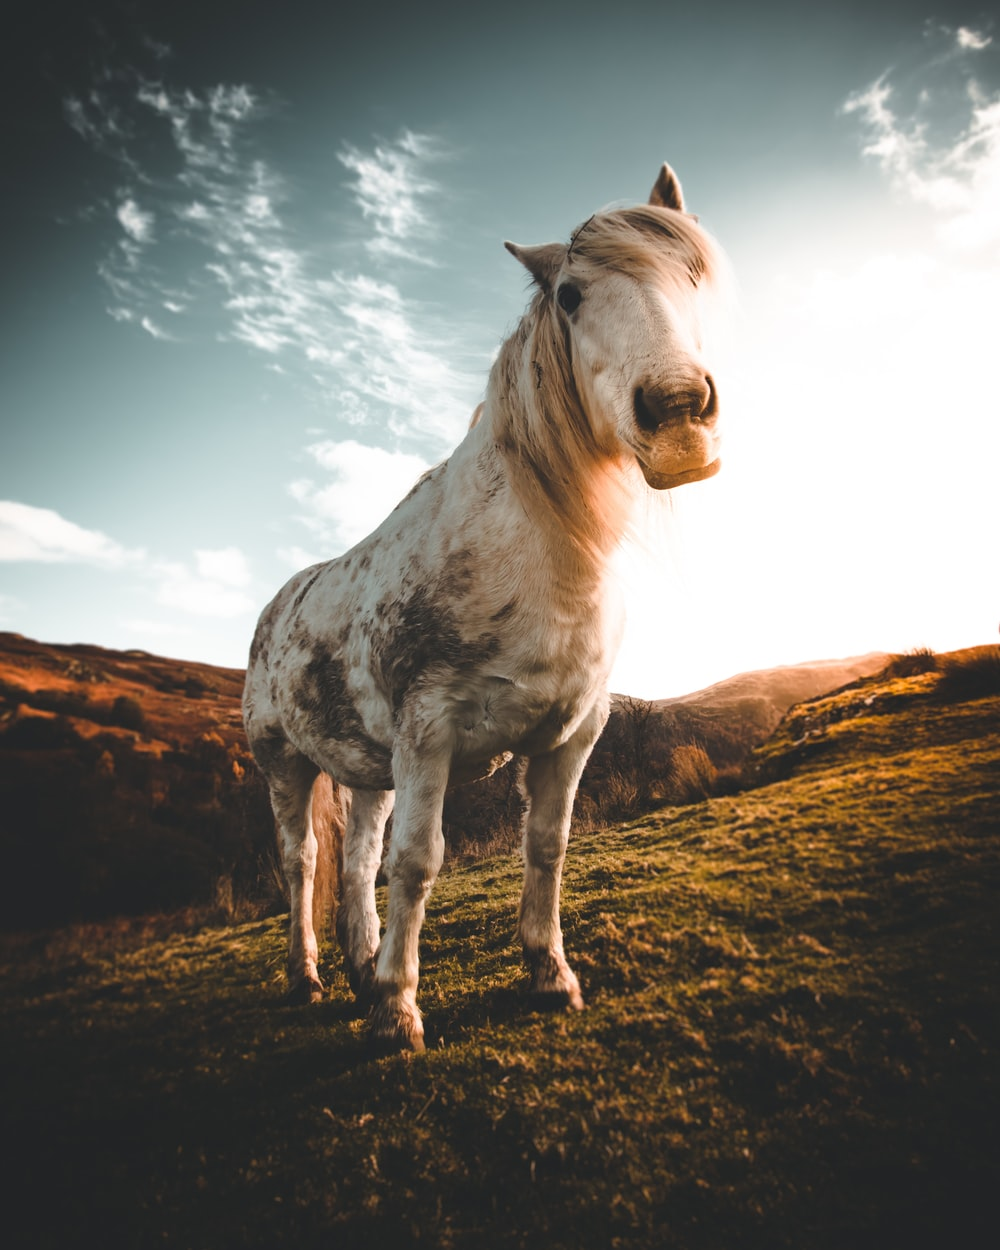 white and brown horse on brown field during daytime